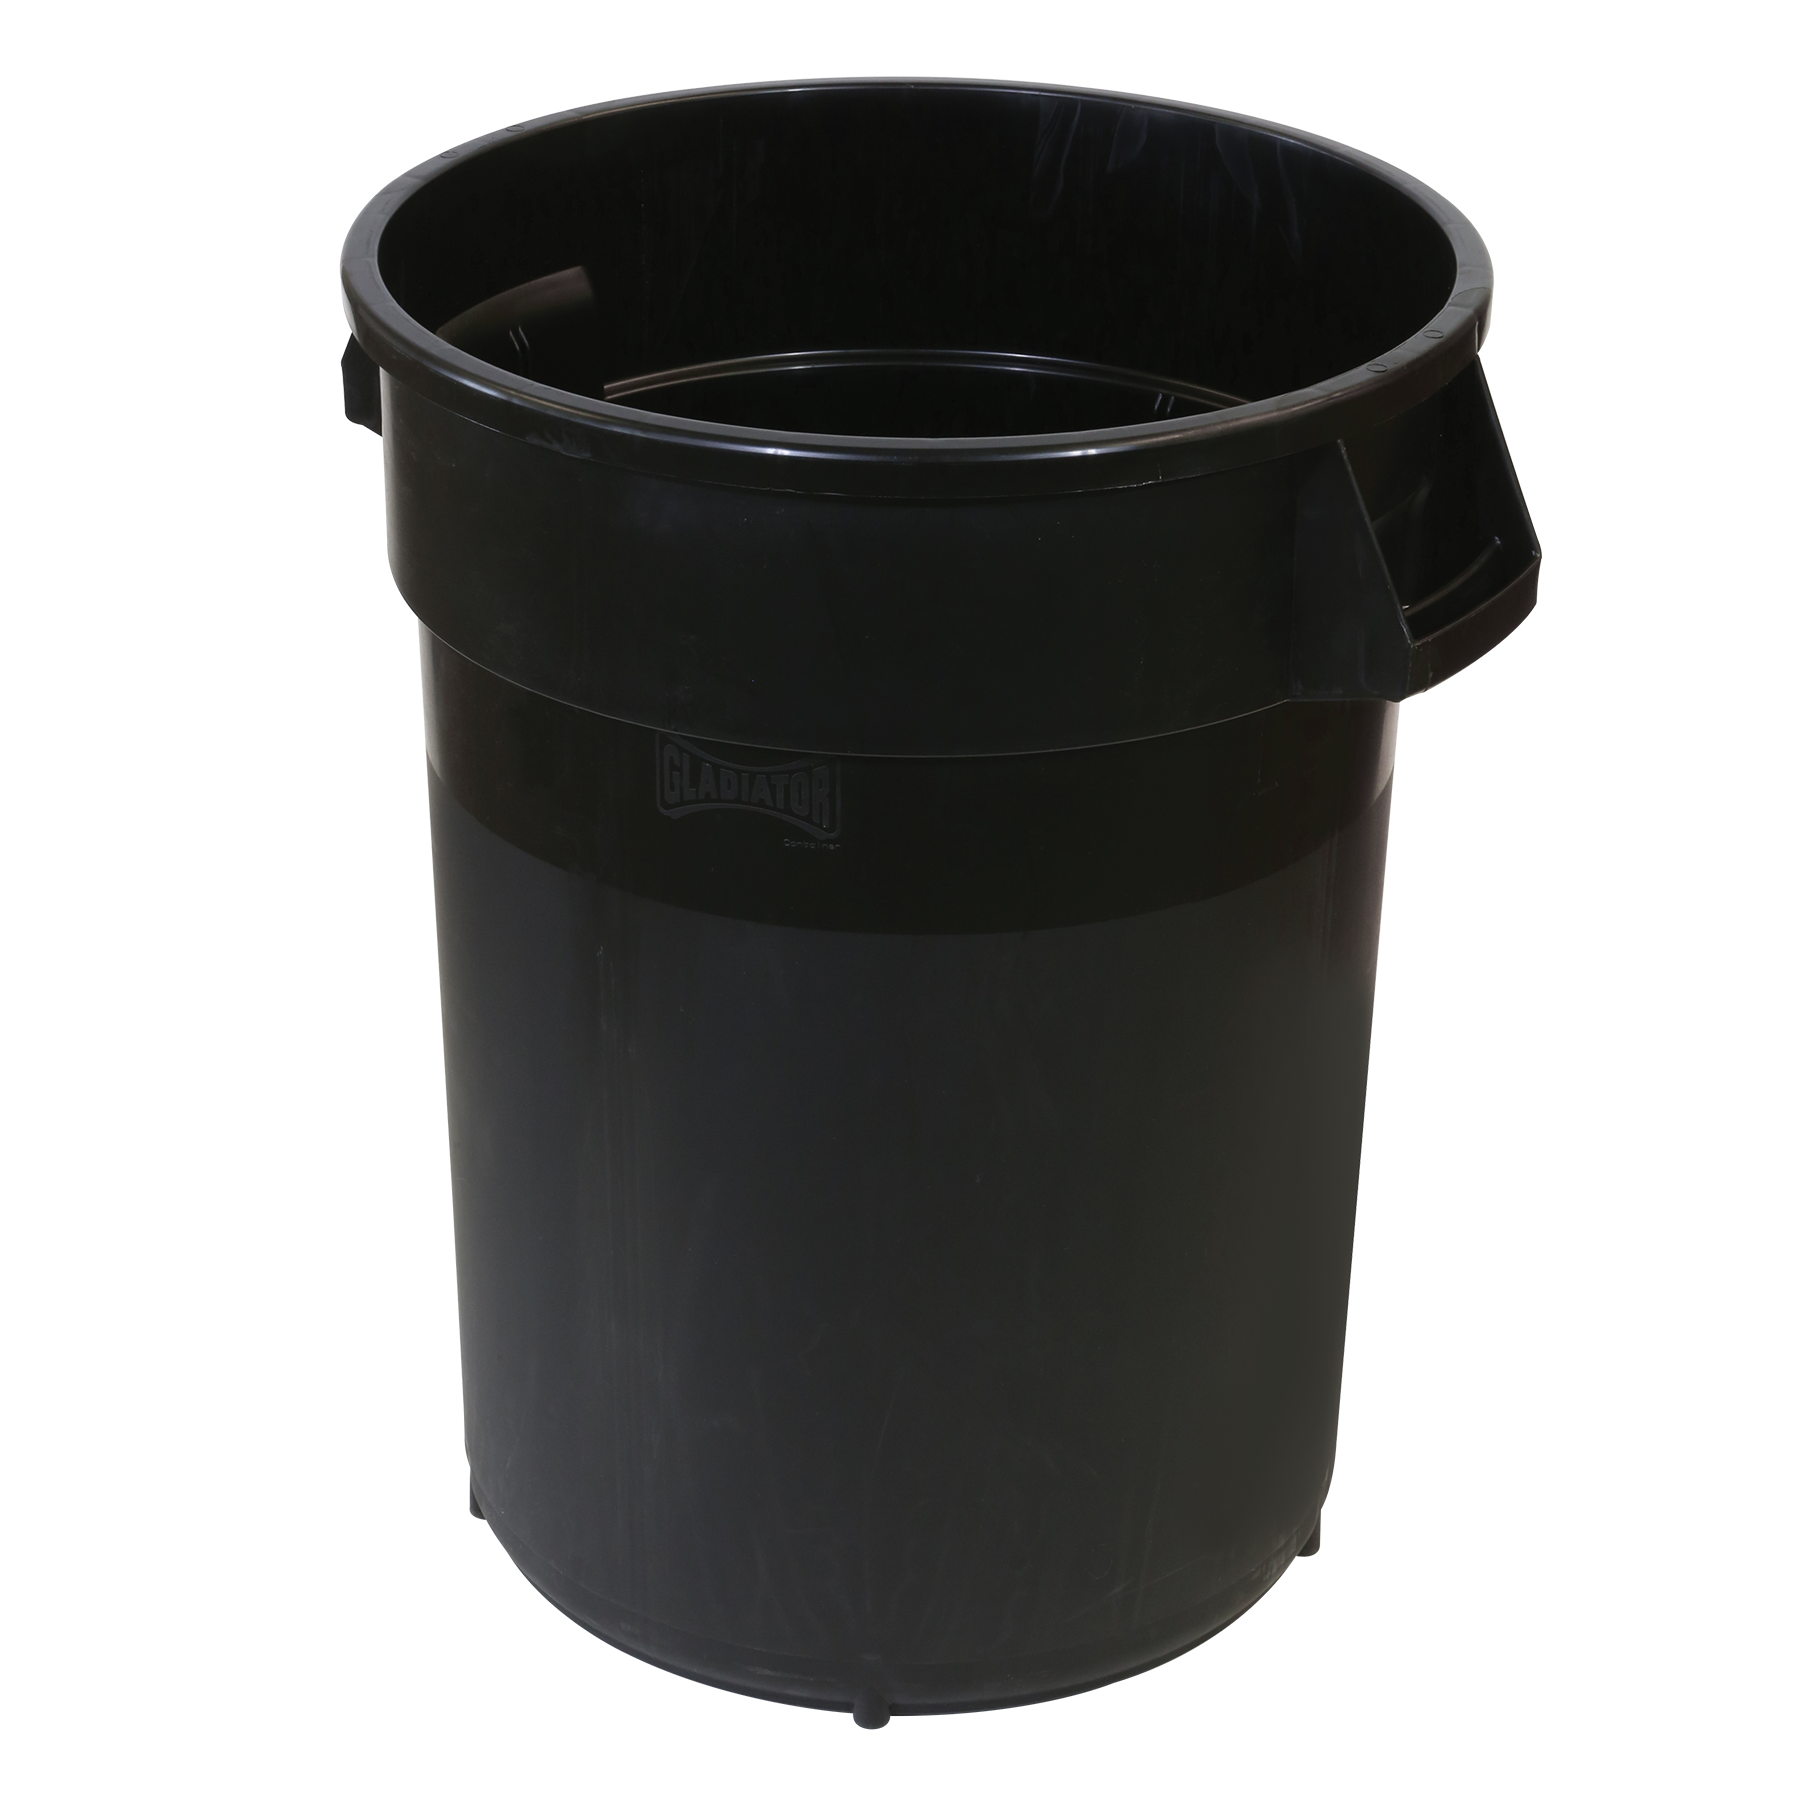 TRASH CAN 32 GALLON BLACK GLADIATOR